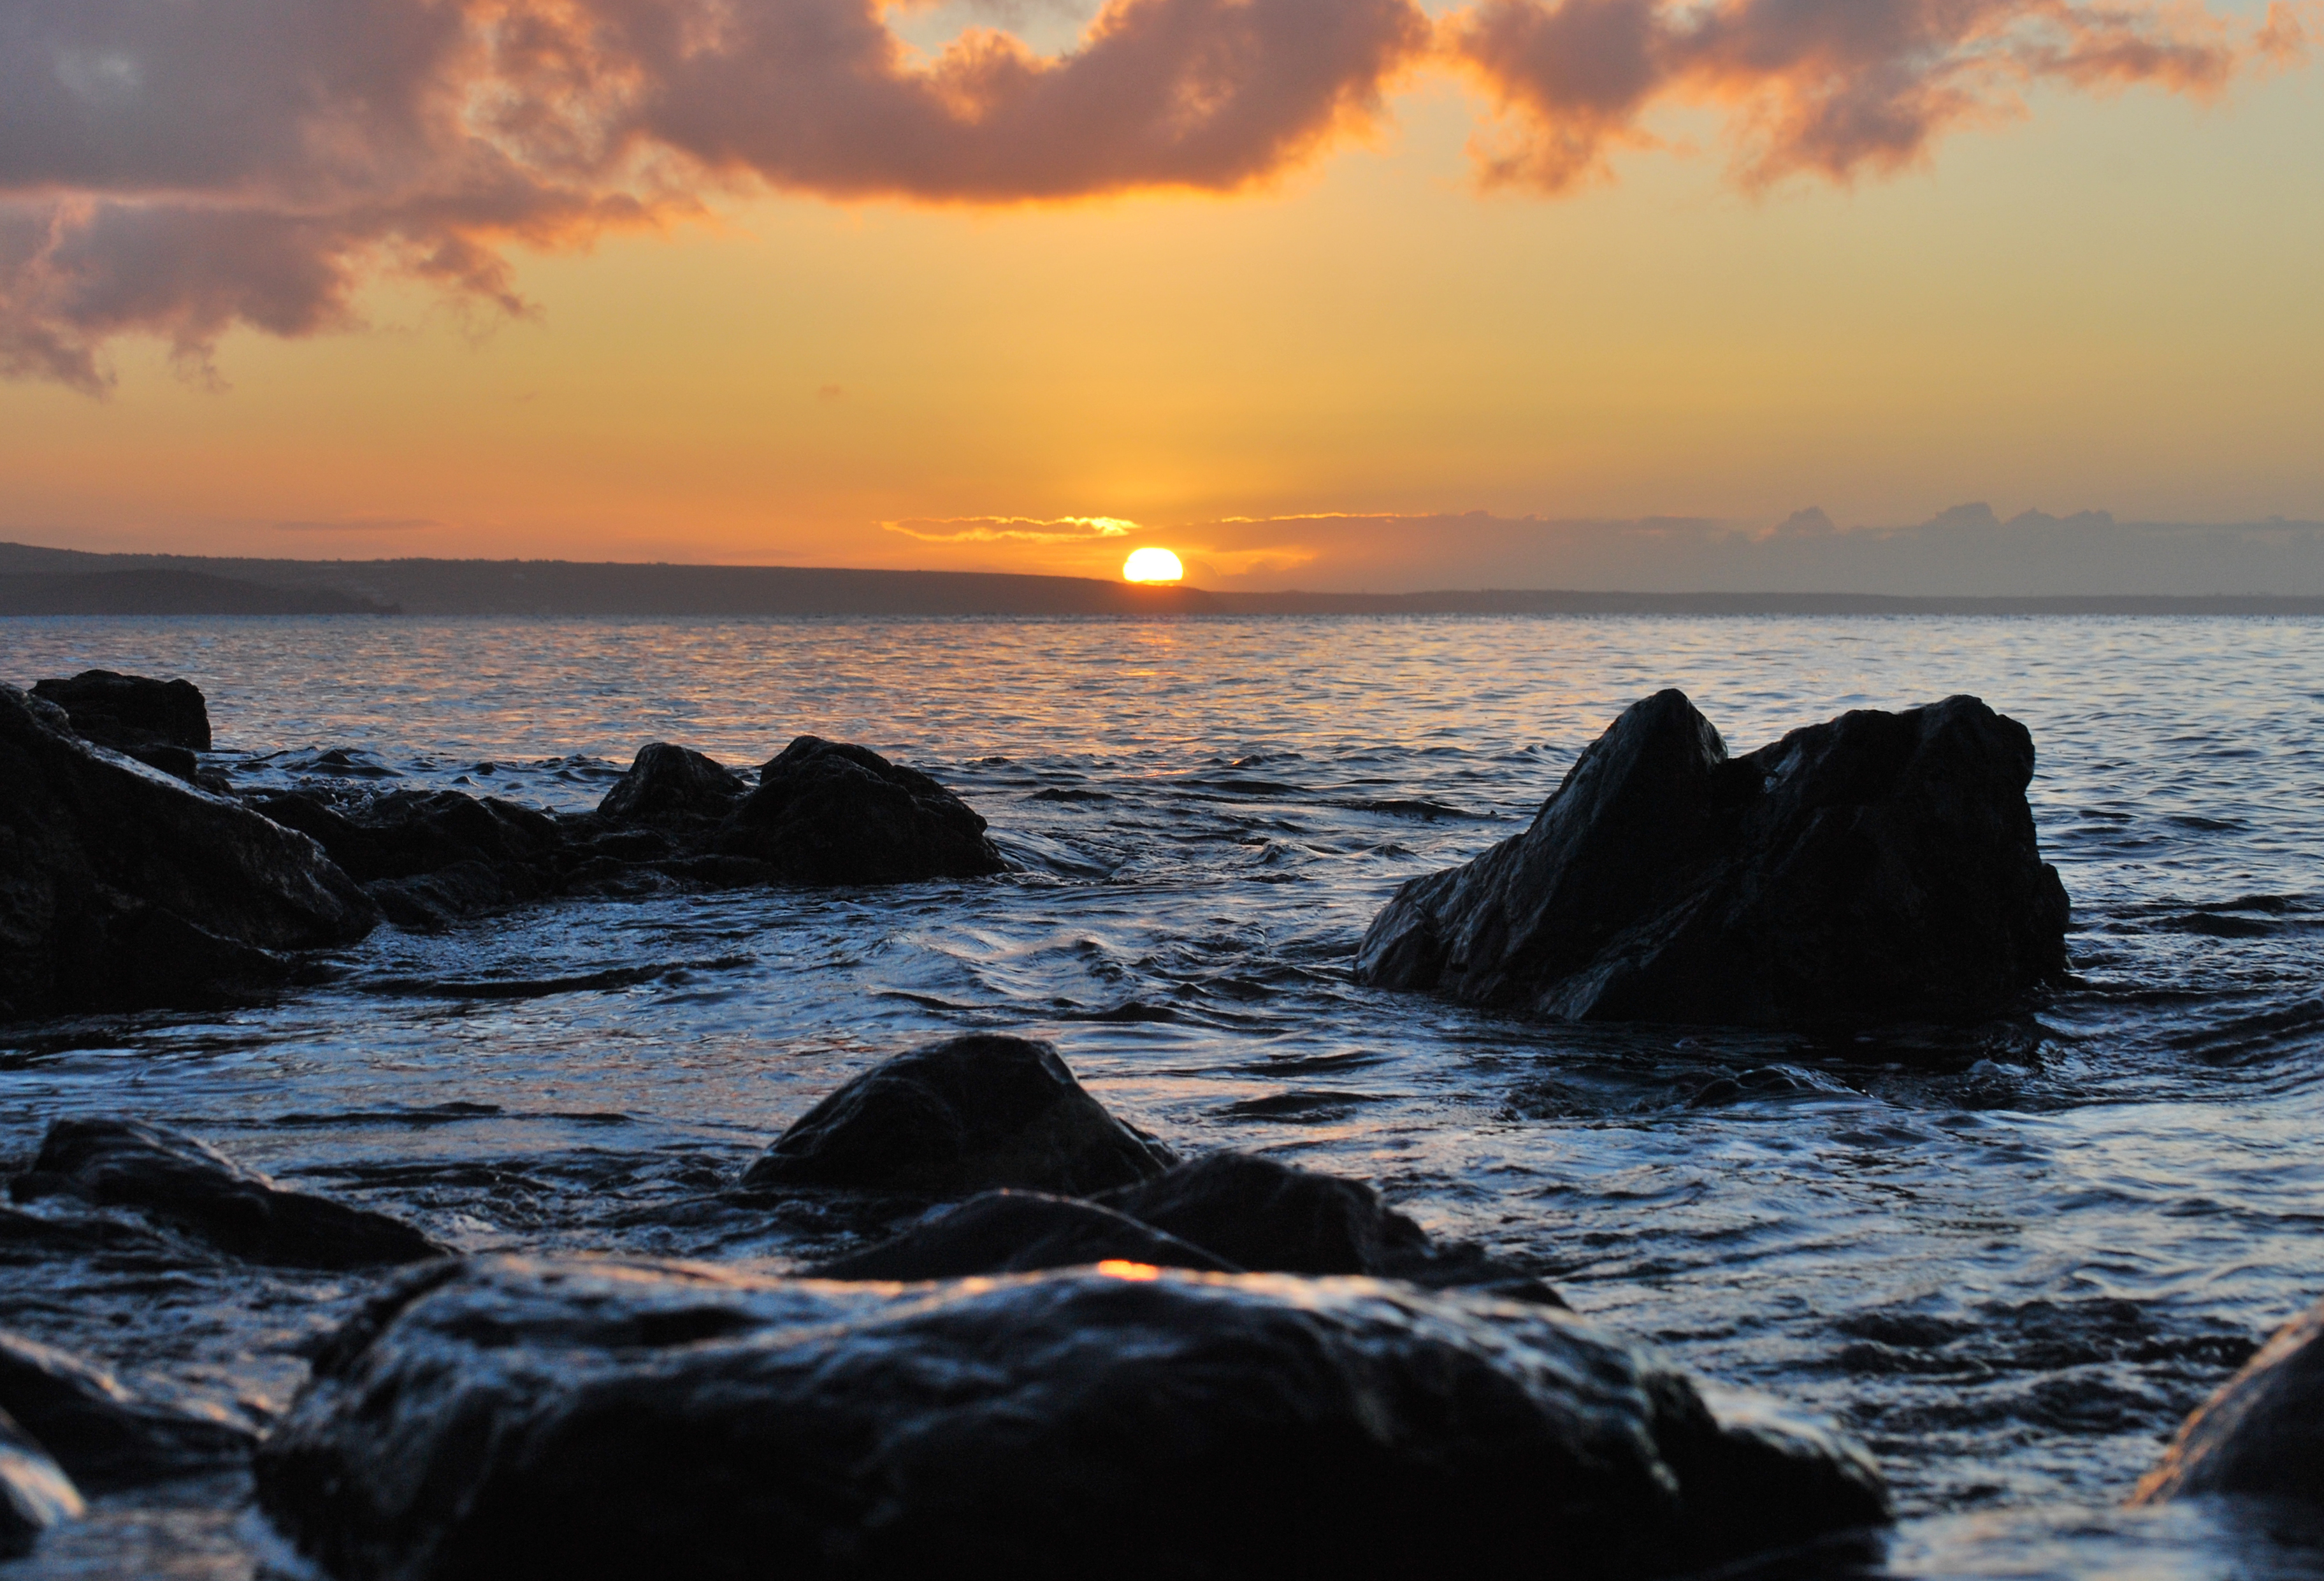 Sunset between rocks, sunset, dusk, ocean, sea, rocks, boulders, clouds, water, horizon, sky